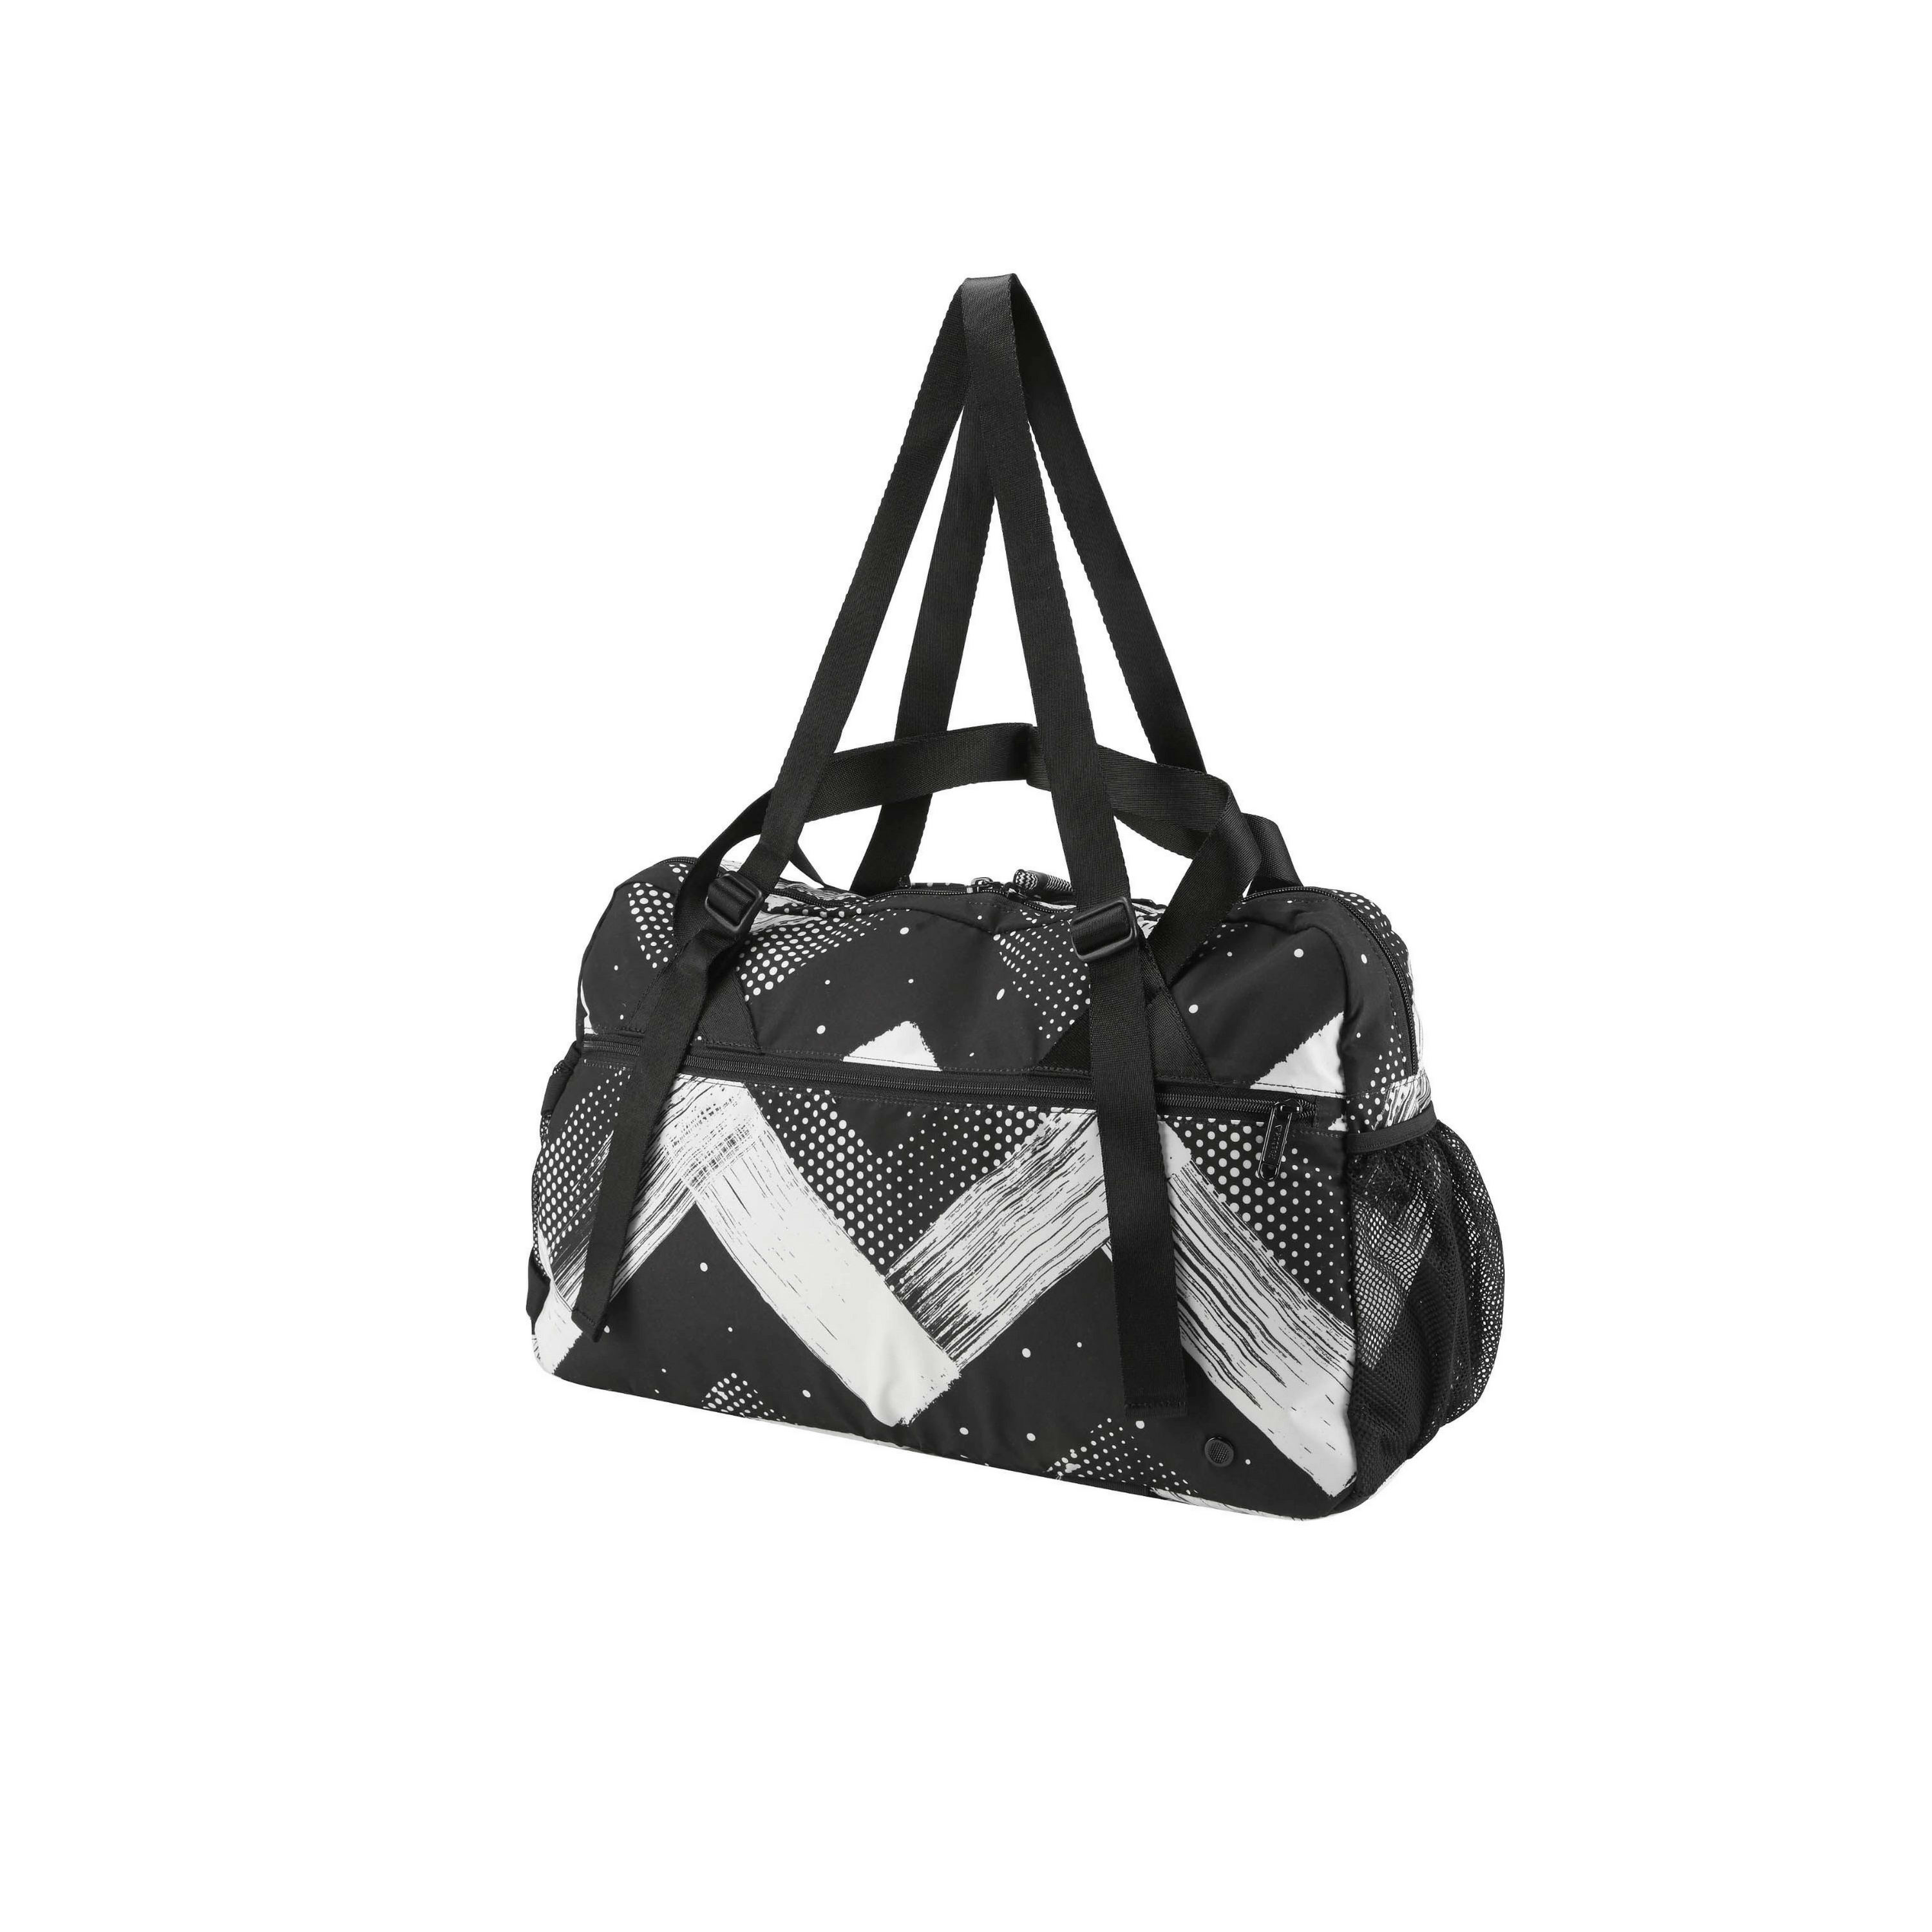 52cf245ca19 How to Clean a Gym Bag